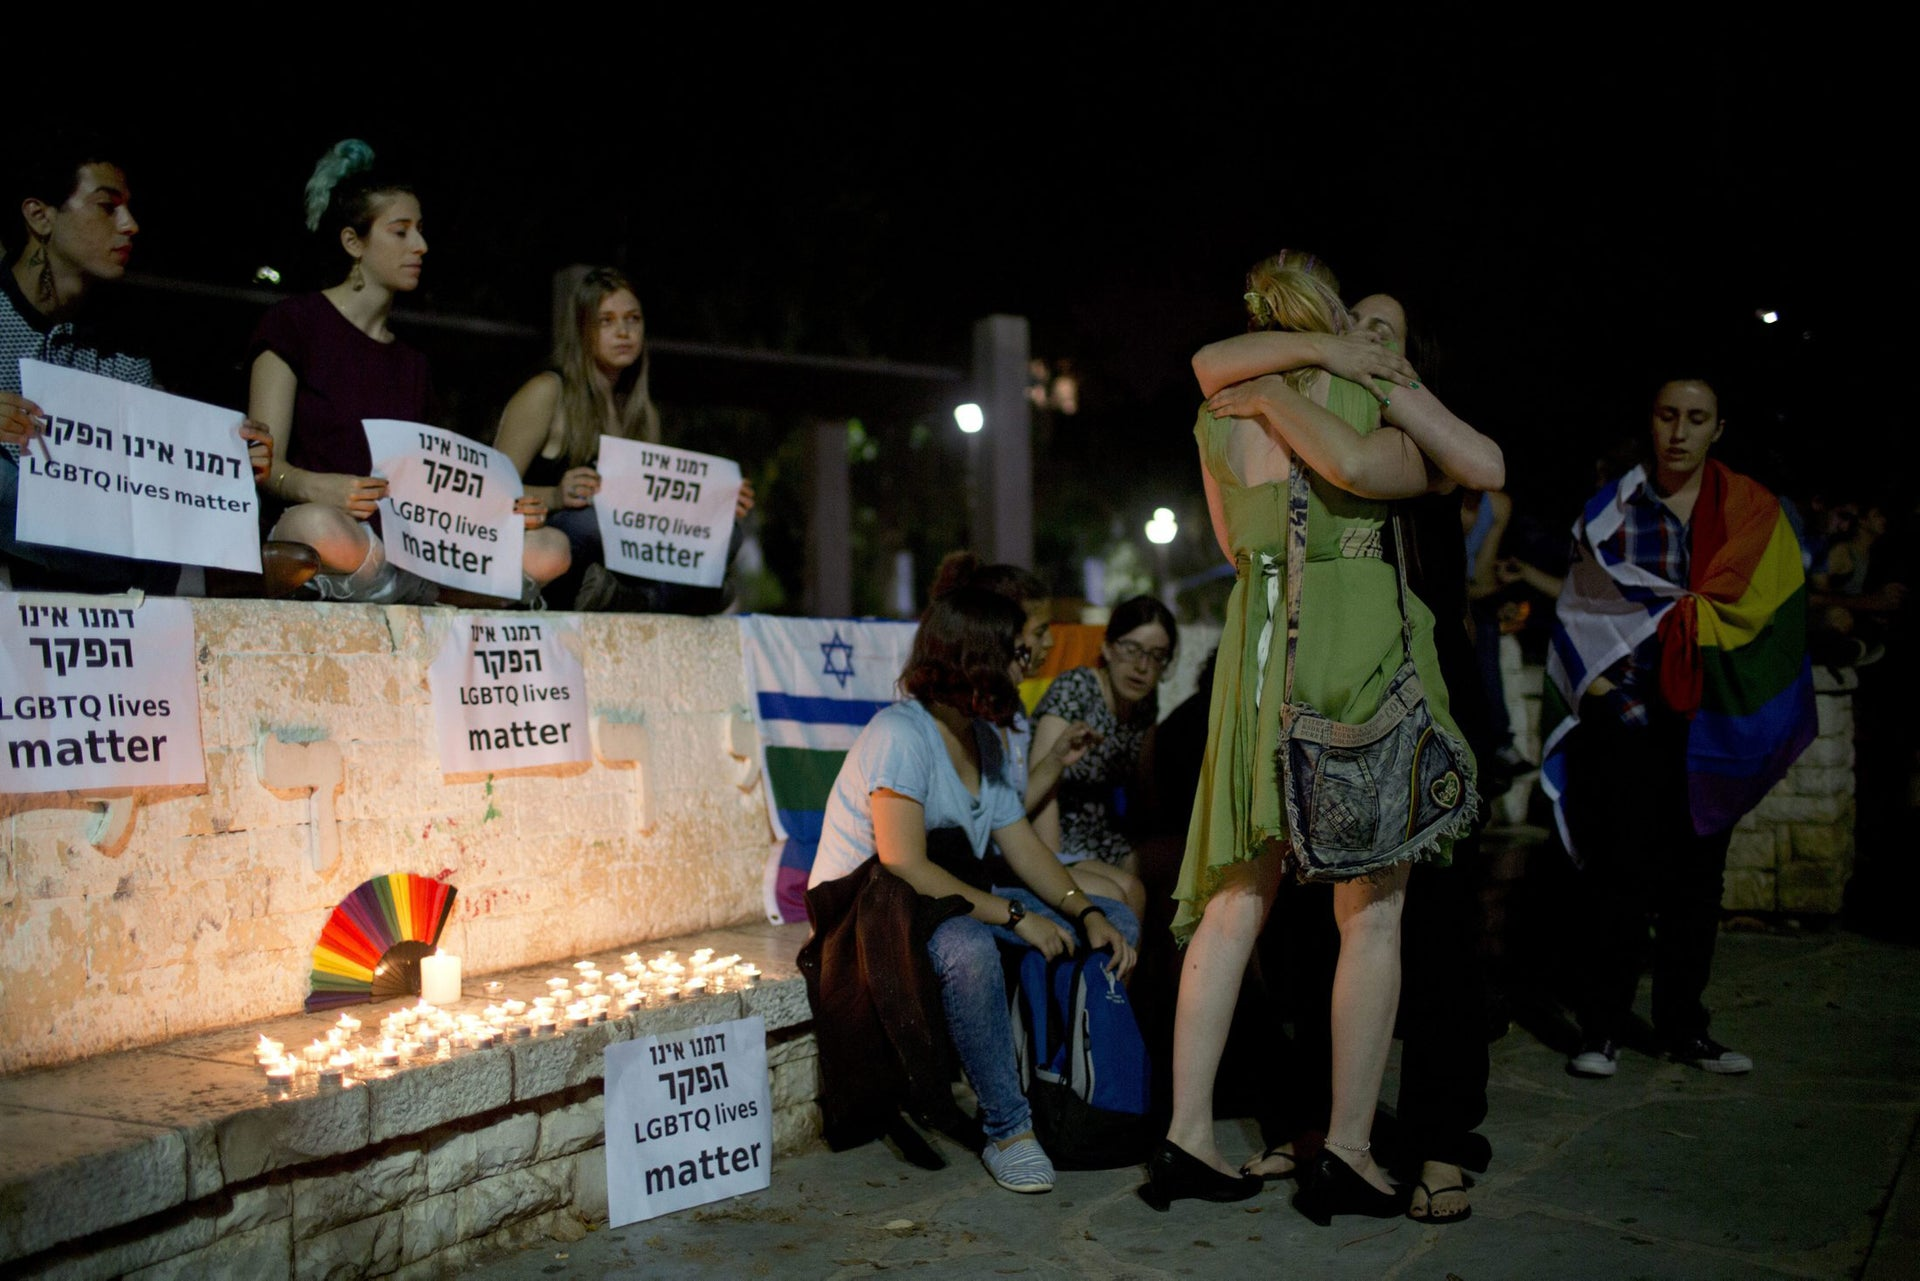 Members LGBT community light candles in solidarity with Florida's shooting attack victims in Tel Aviv, Israel, Sunday, June 12, 2016. The shooting attack in Orlando, Florida, USA, Sunday, left more than 50 people dead amid a multitude of events celebrating LGBT Pride Month.